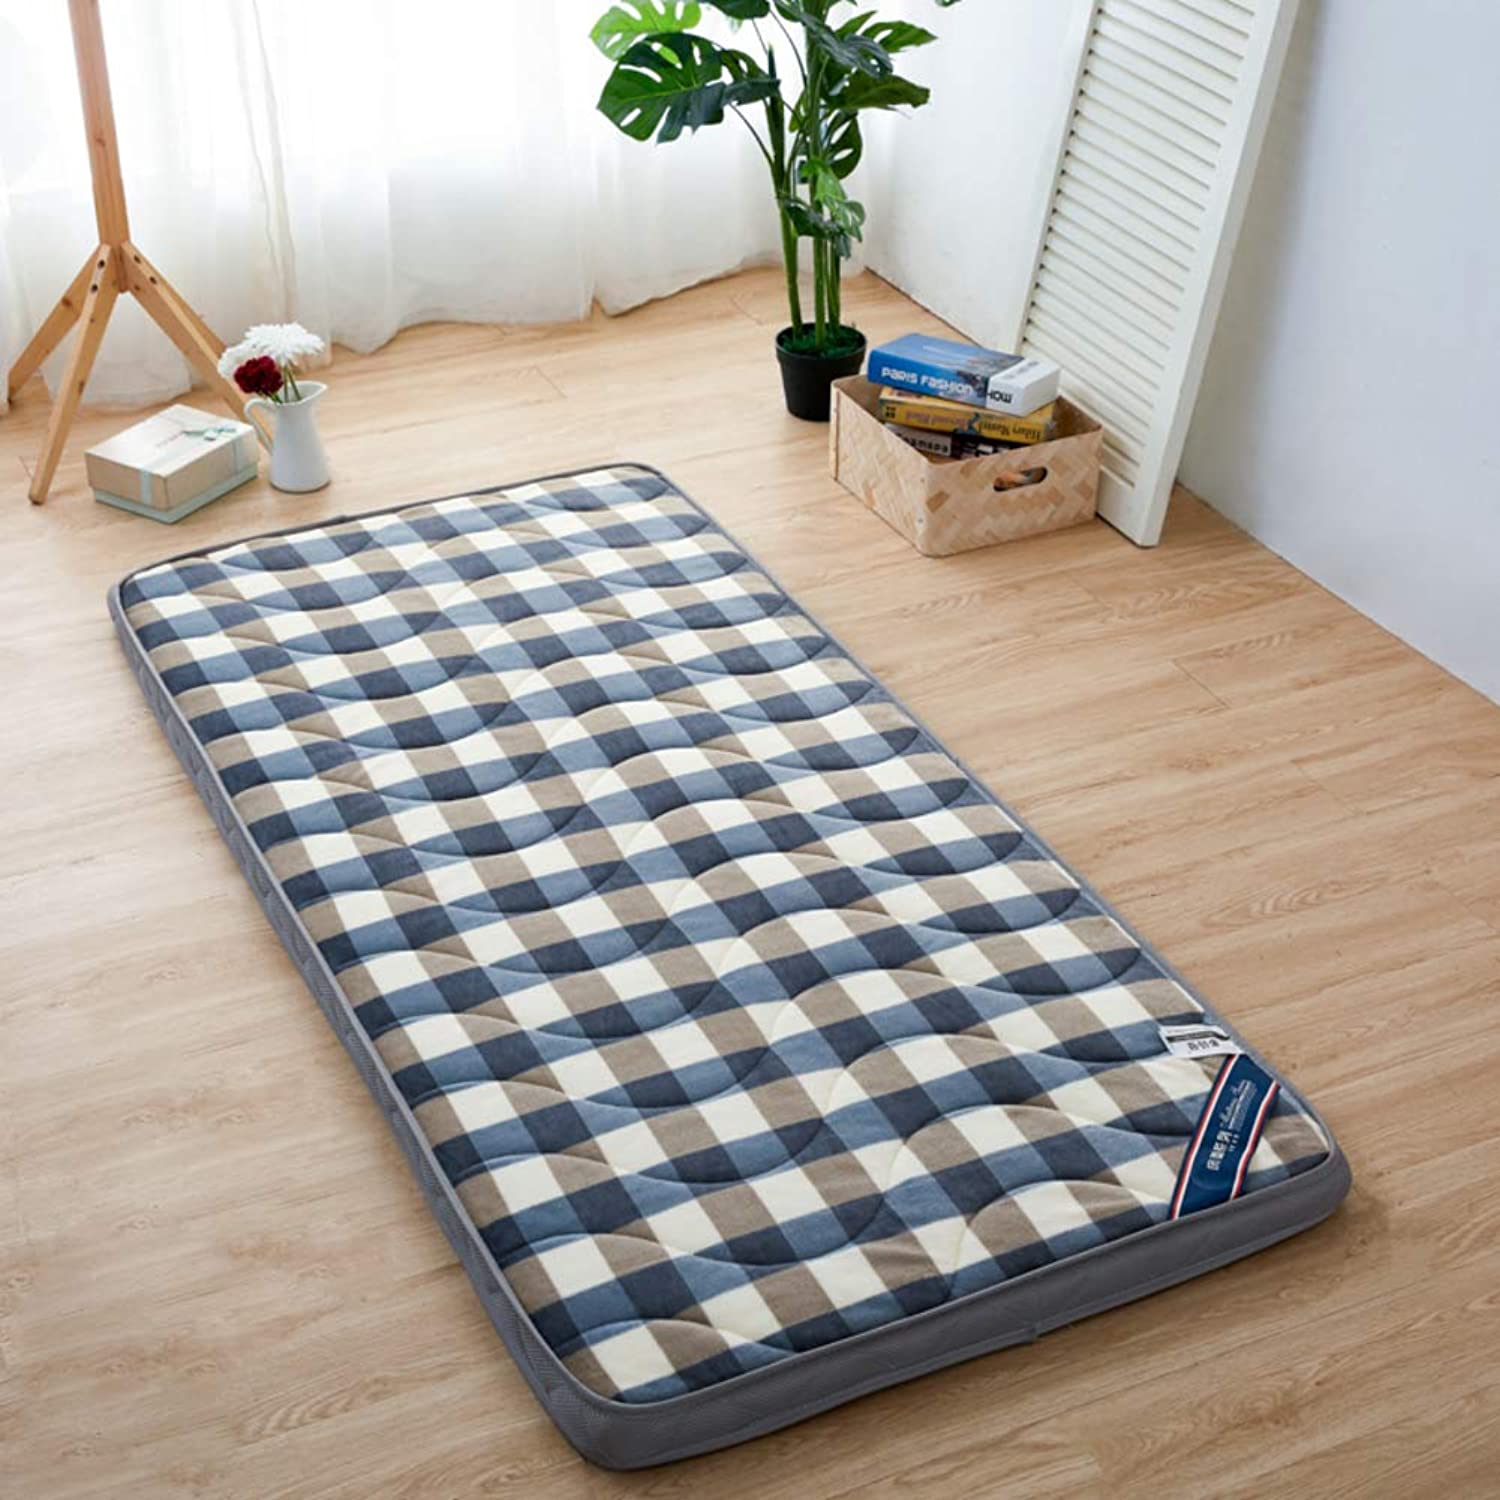 Foldable Warm Mattress,Student Pad,Dormitory Single Mat,Padded Ground Futon,Flannel Mattress Prevent Allergy-J 90x200cm(35x79inch)